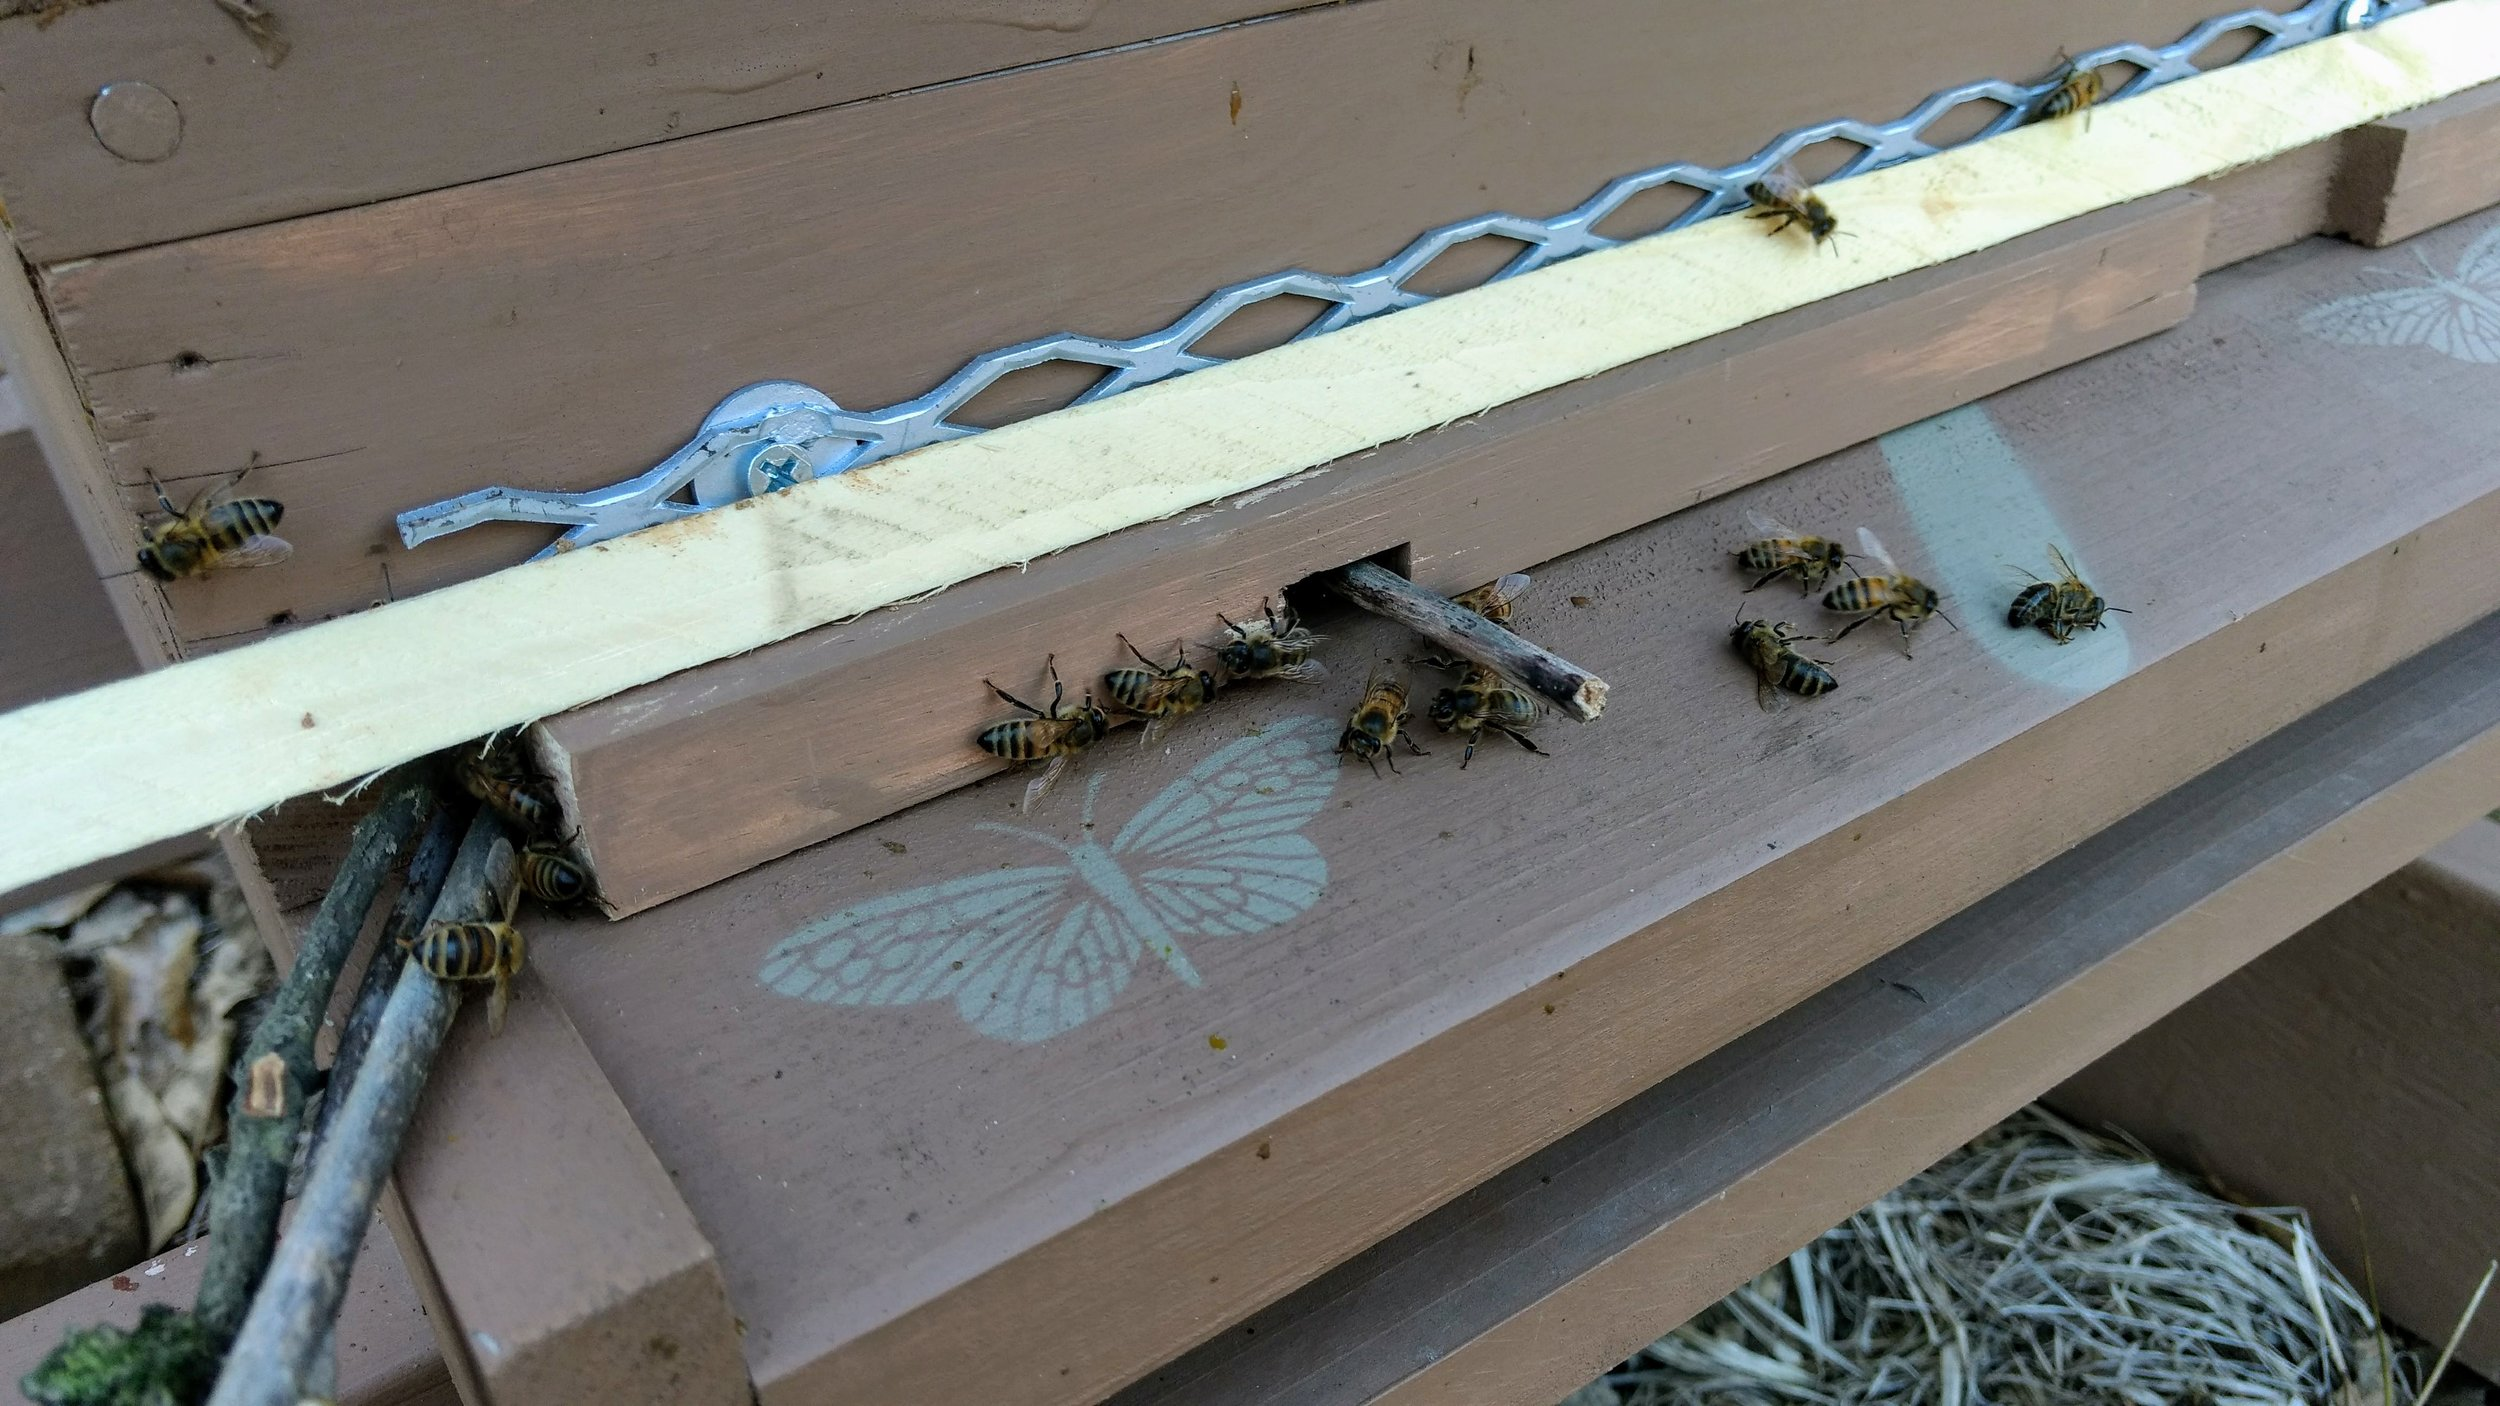 Sticks used to reduce entrances into a hive being robbed.